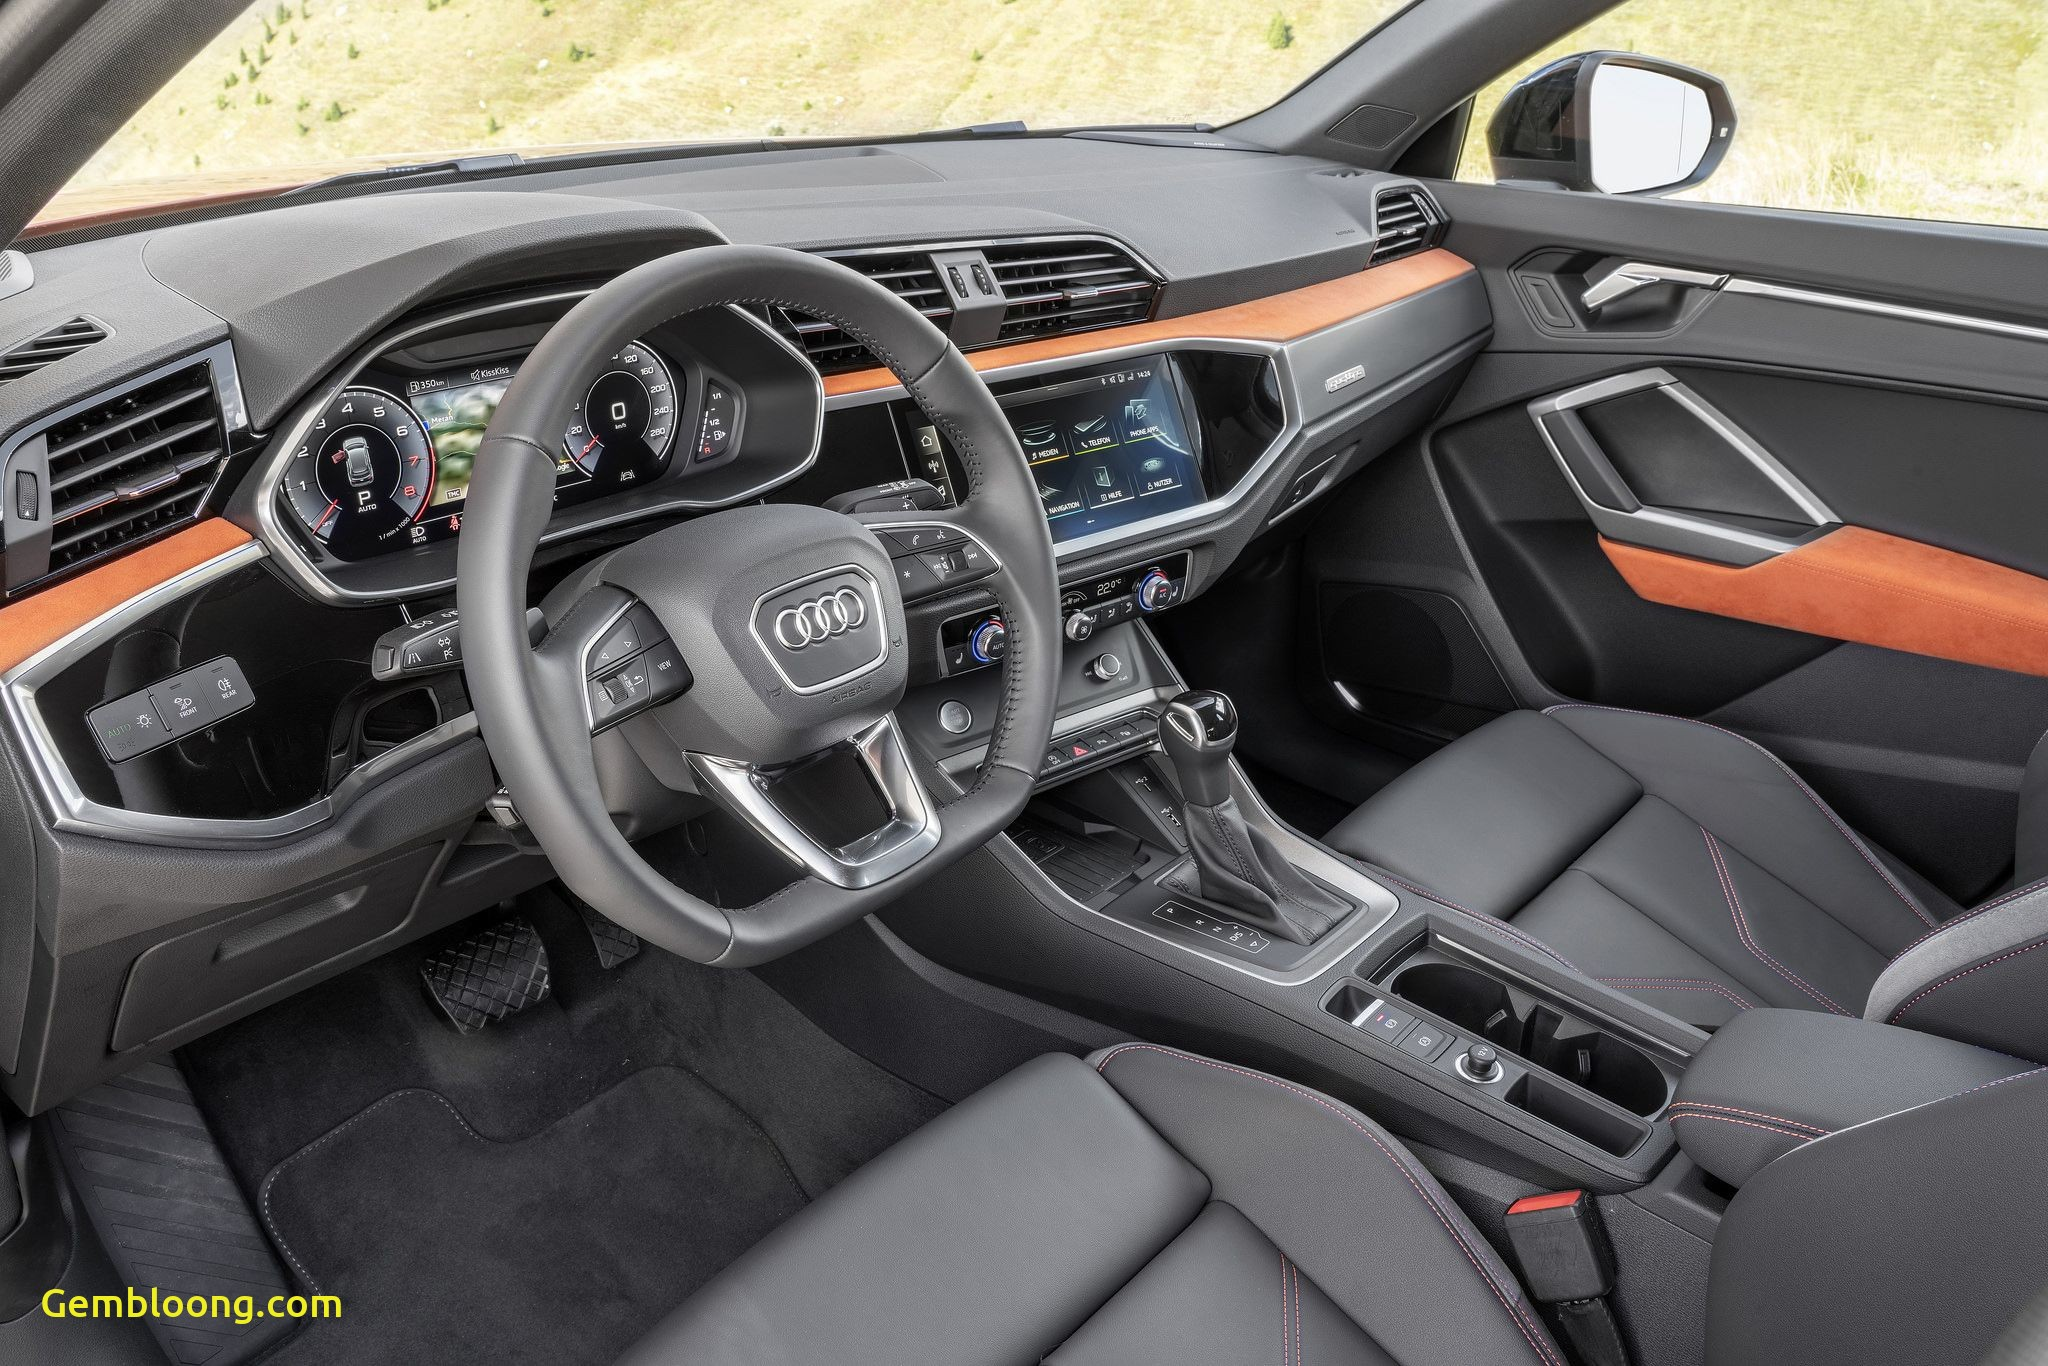 Audi Q3 2013 Best Of the New Audi Q3 Through the Italian Alps with the Sporty